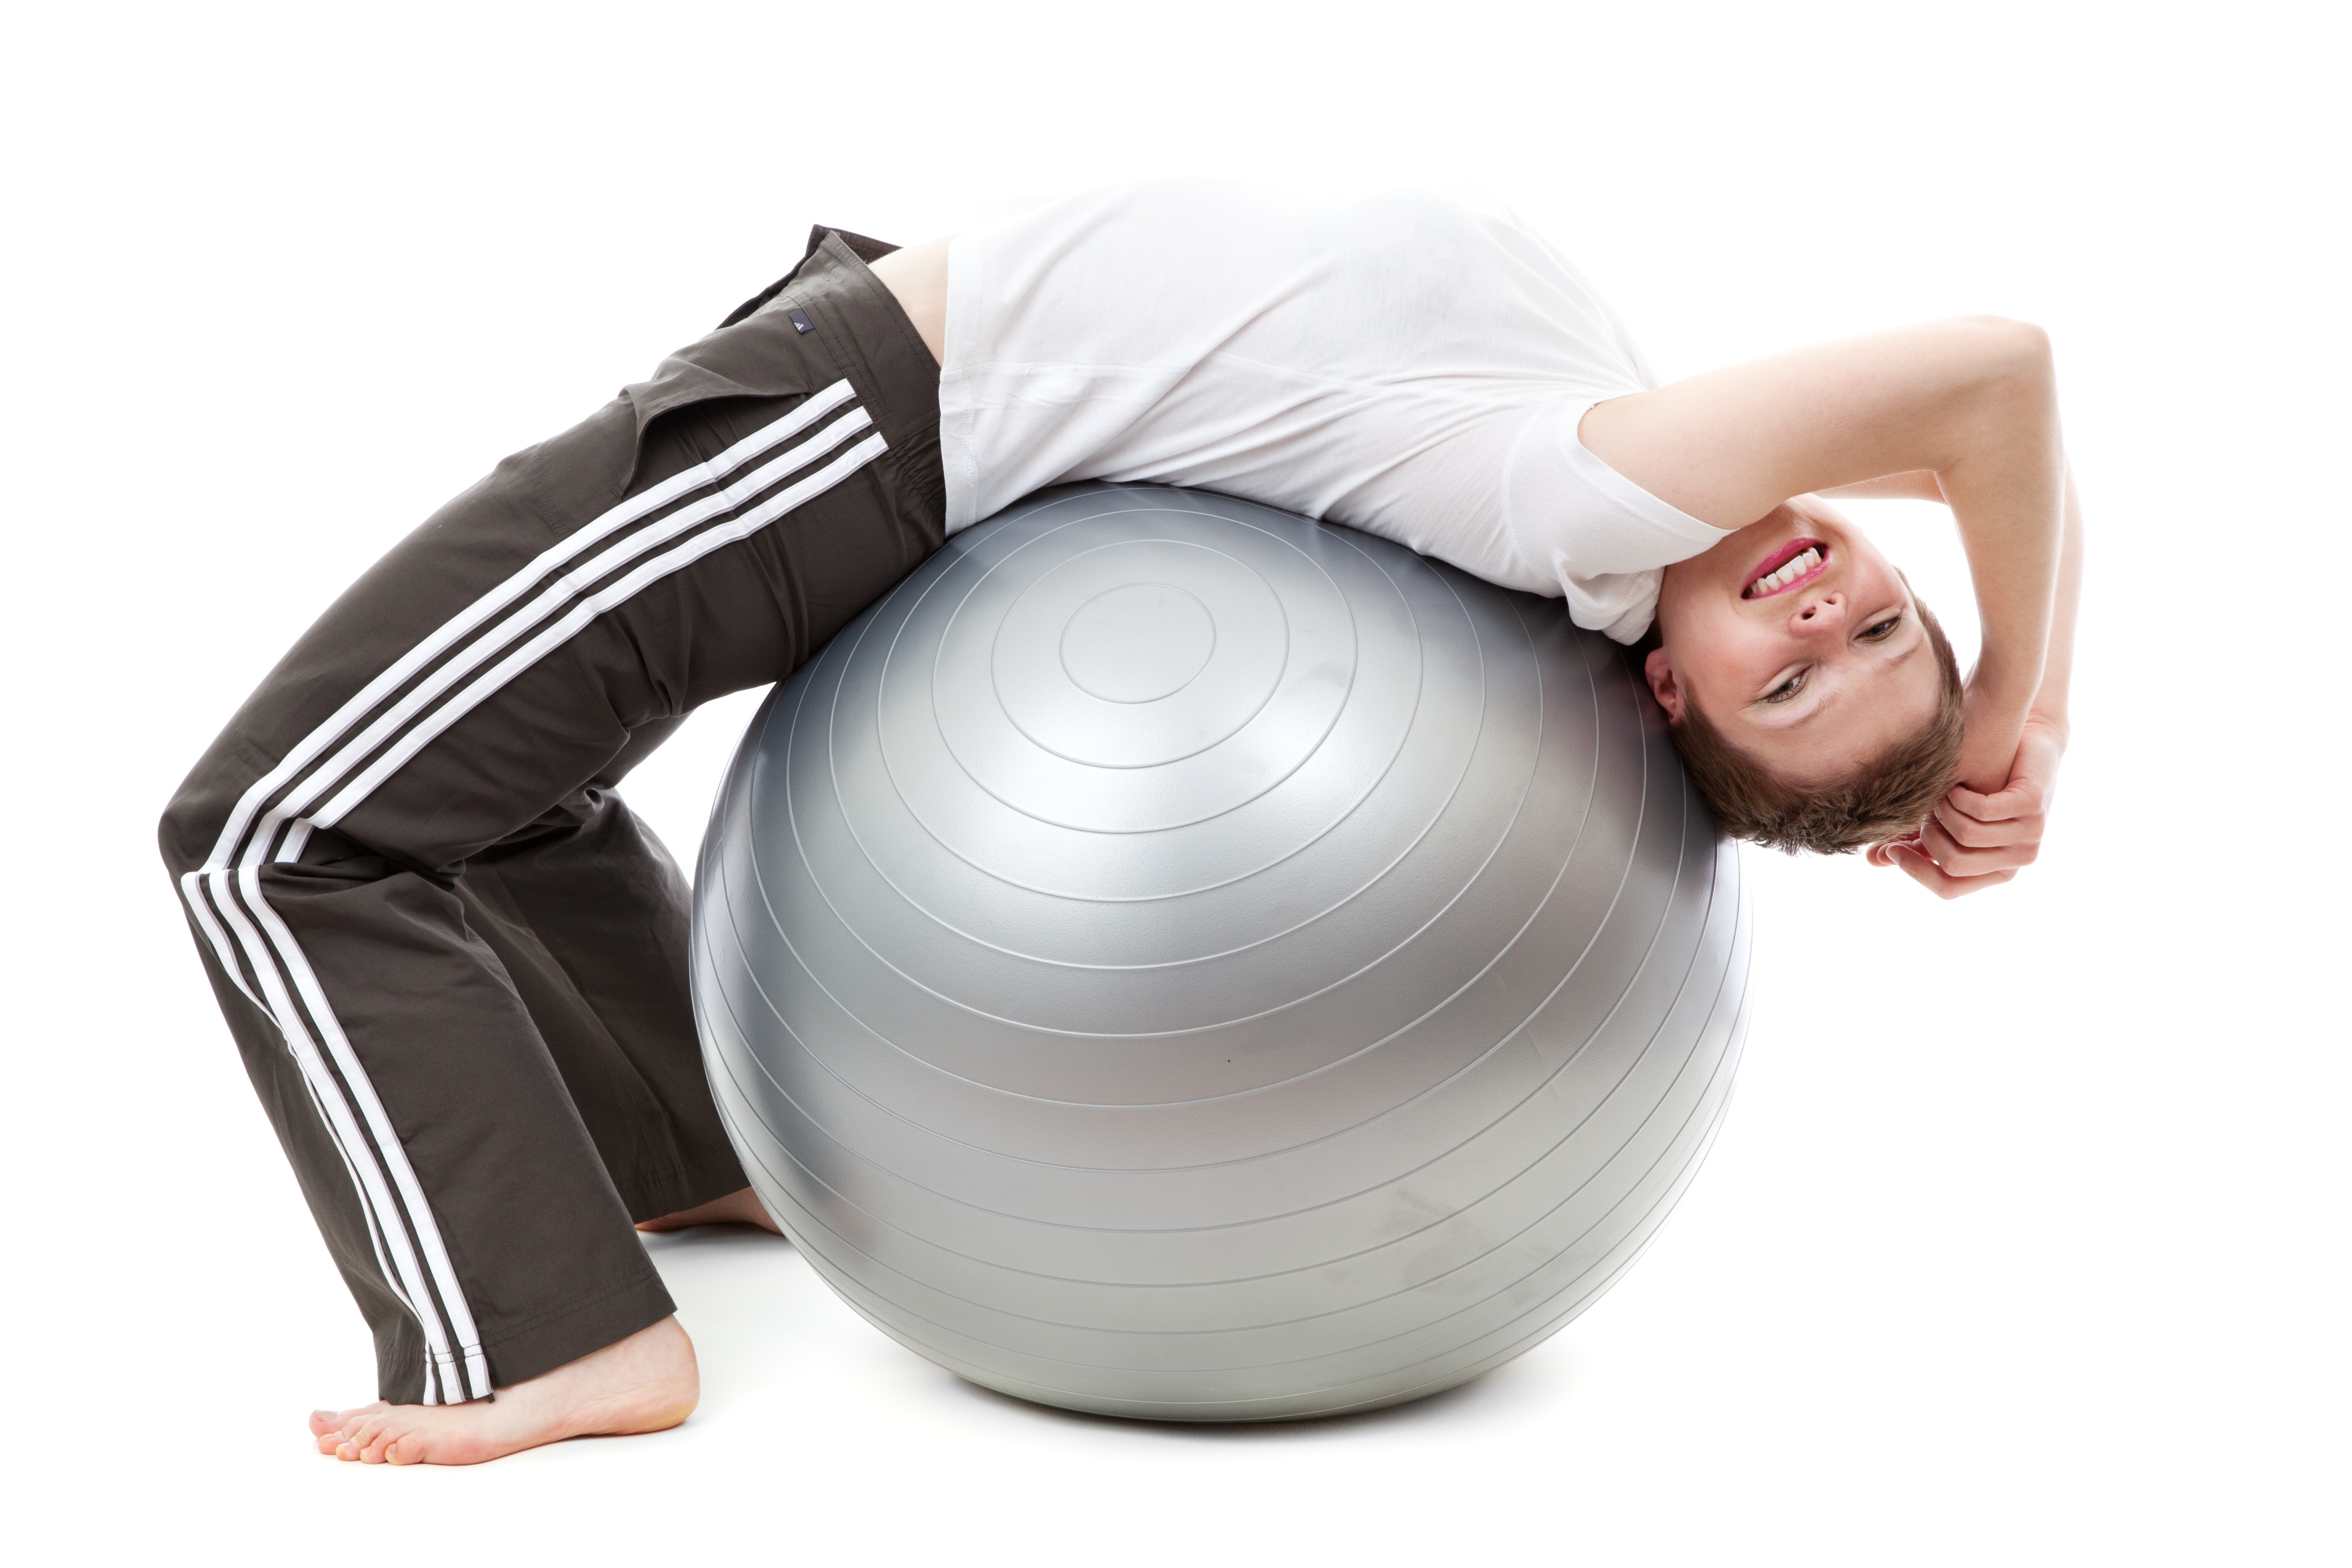 Swiss Ball Exercise An Incredibly Easy Method That Works For All